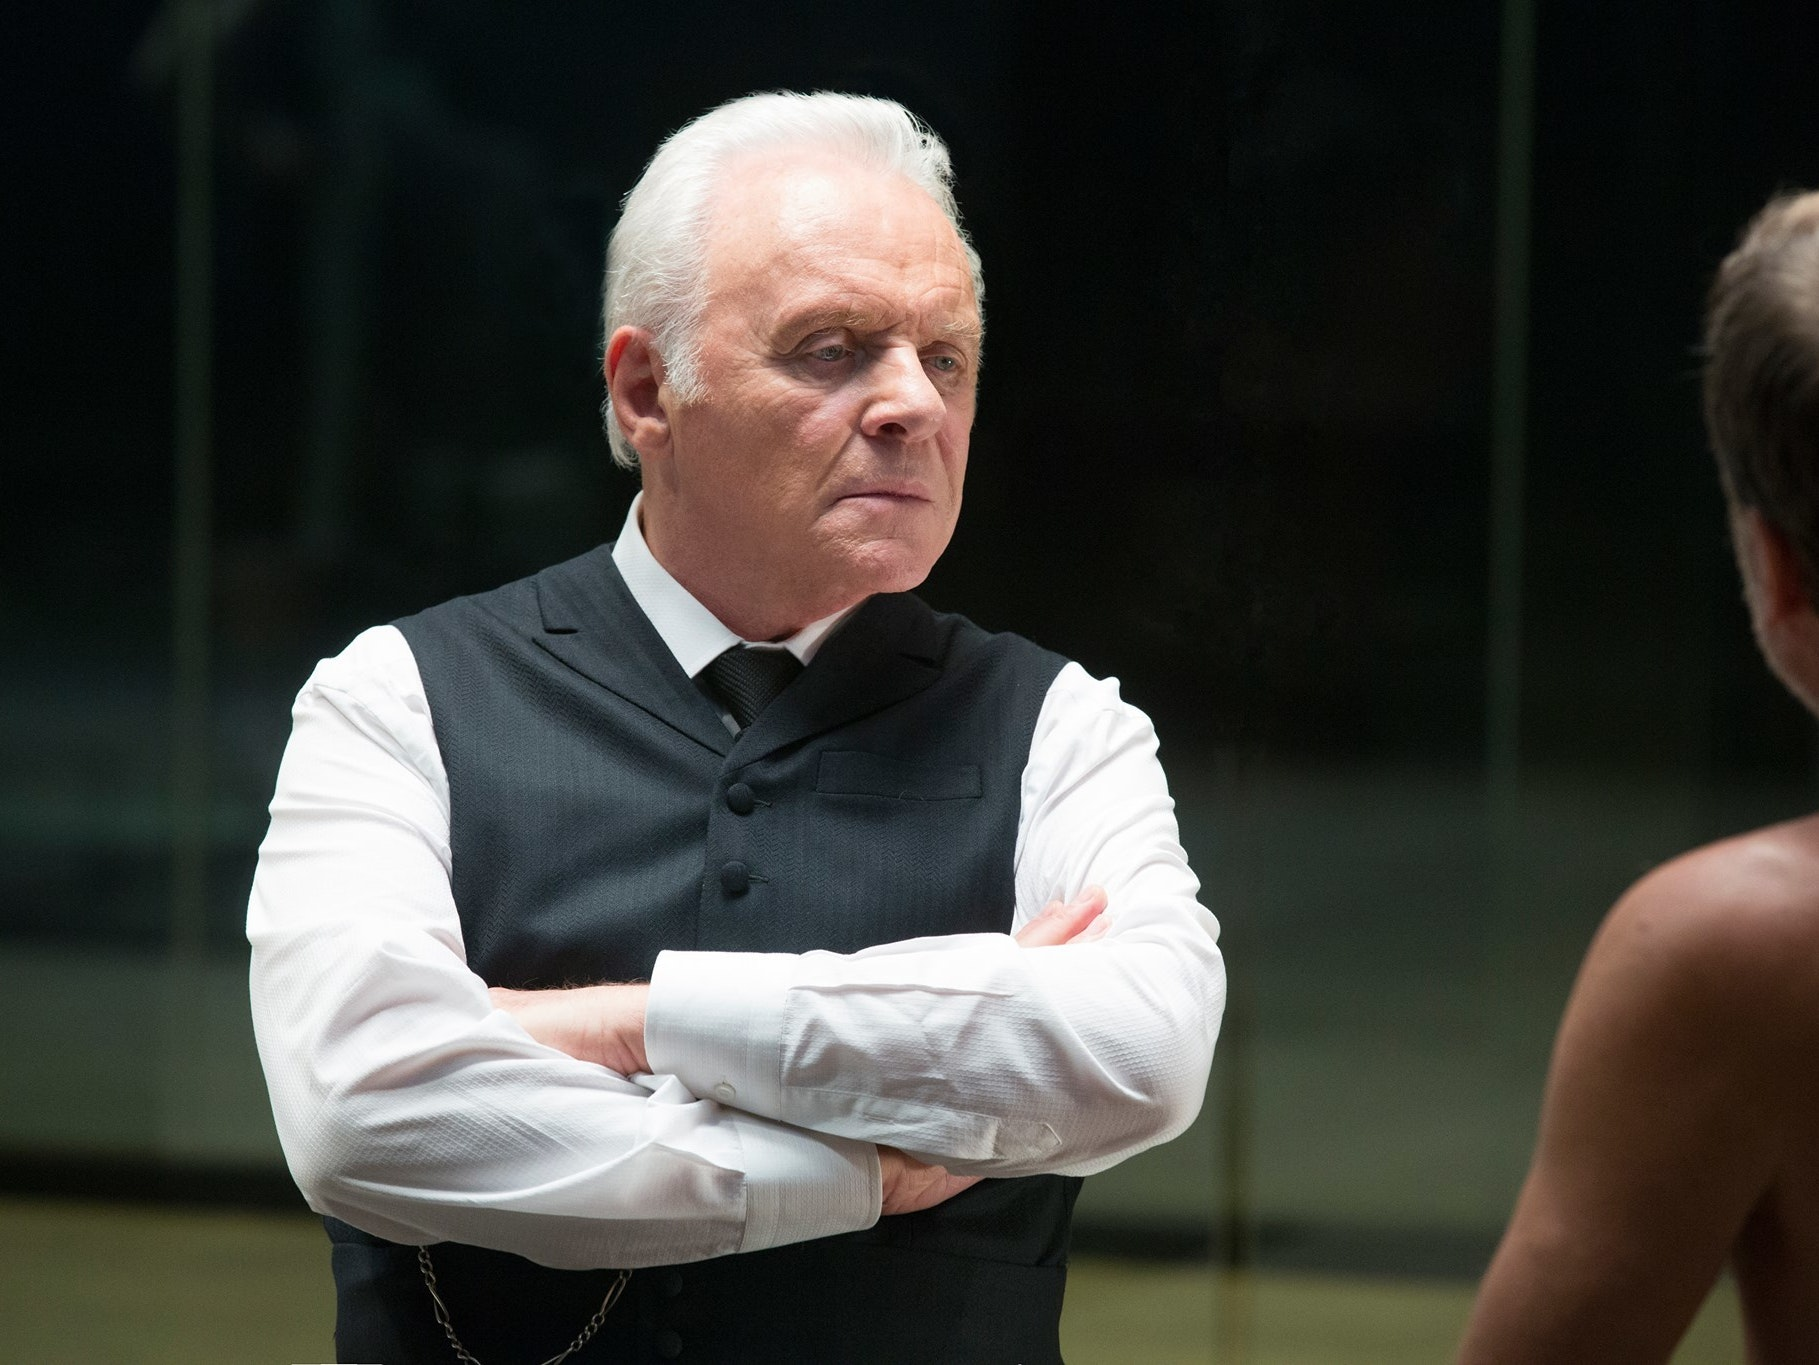 'Westworld' Fans Should Expect to See Roman World as Well